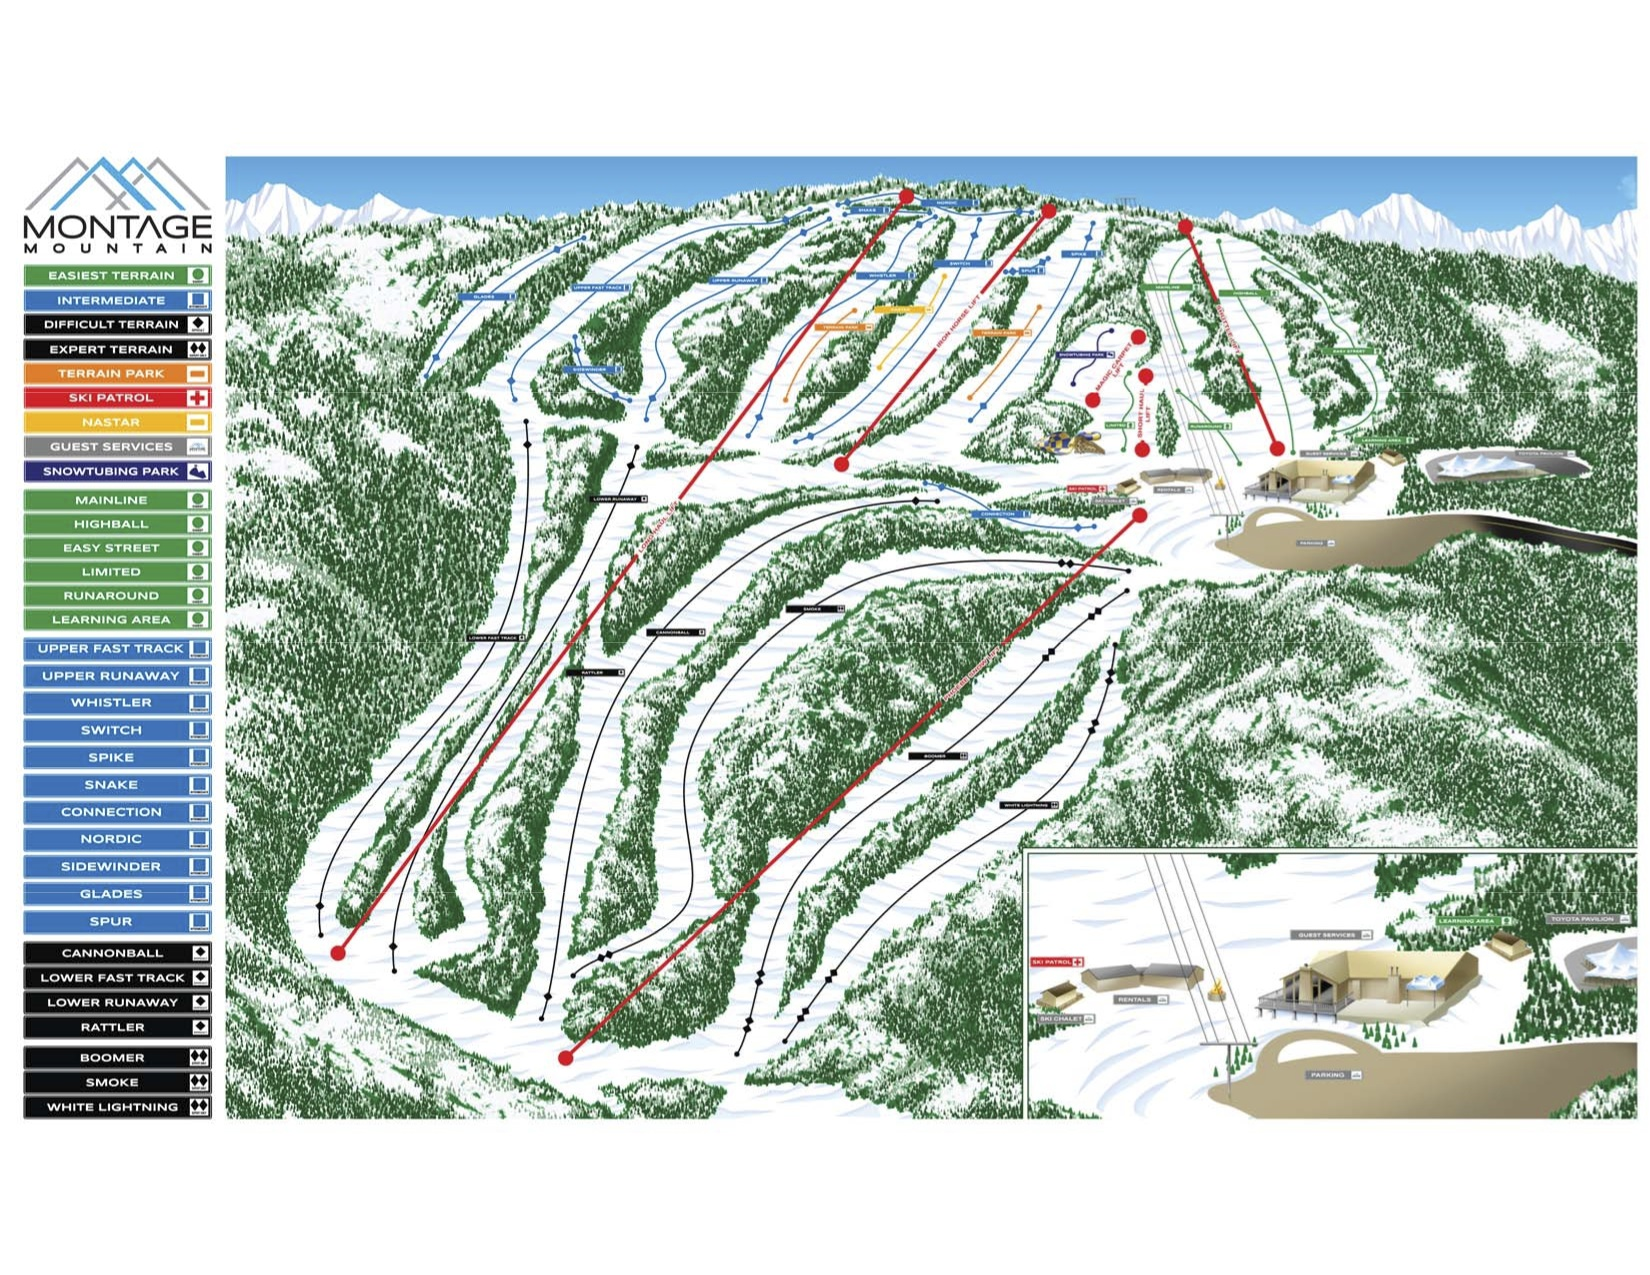 Montage Mountain Resorts Piste / Trail Map